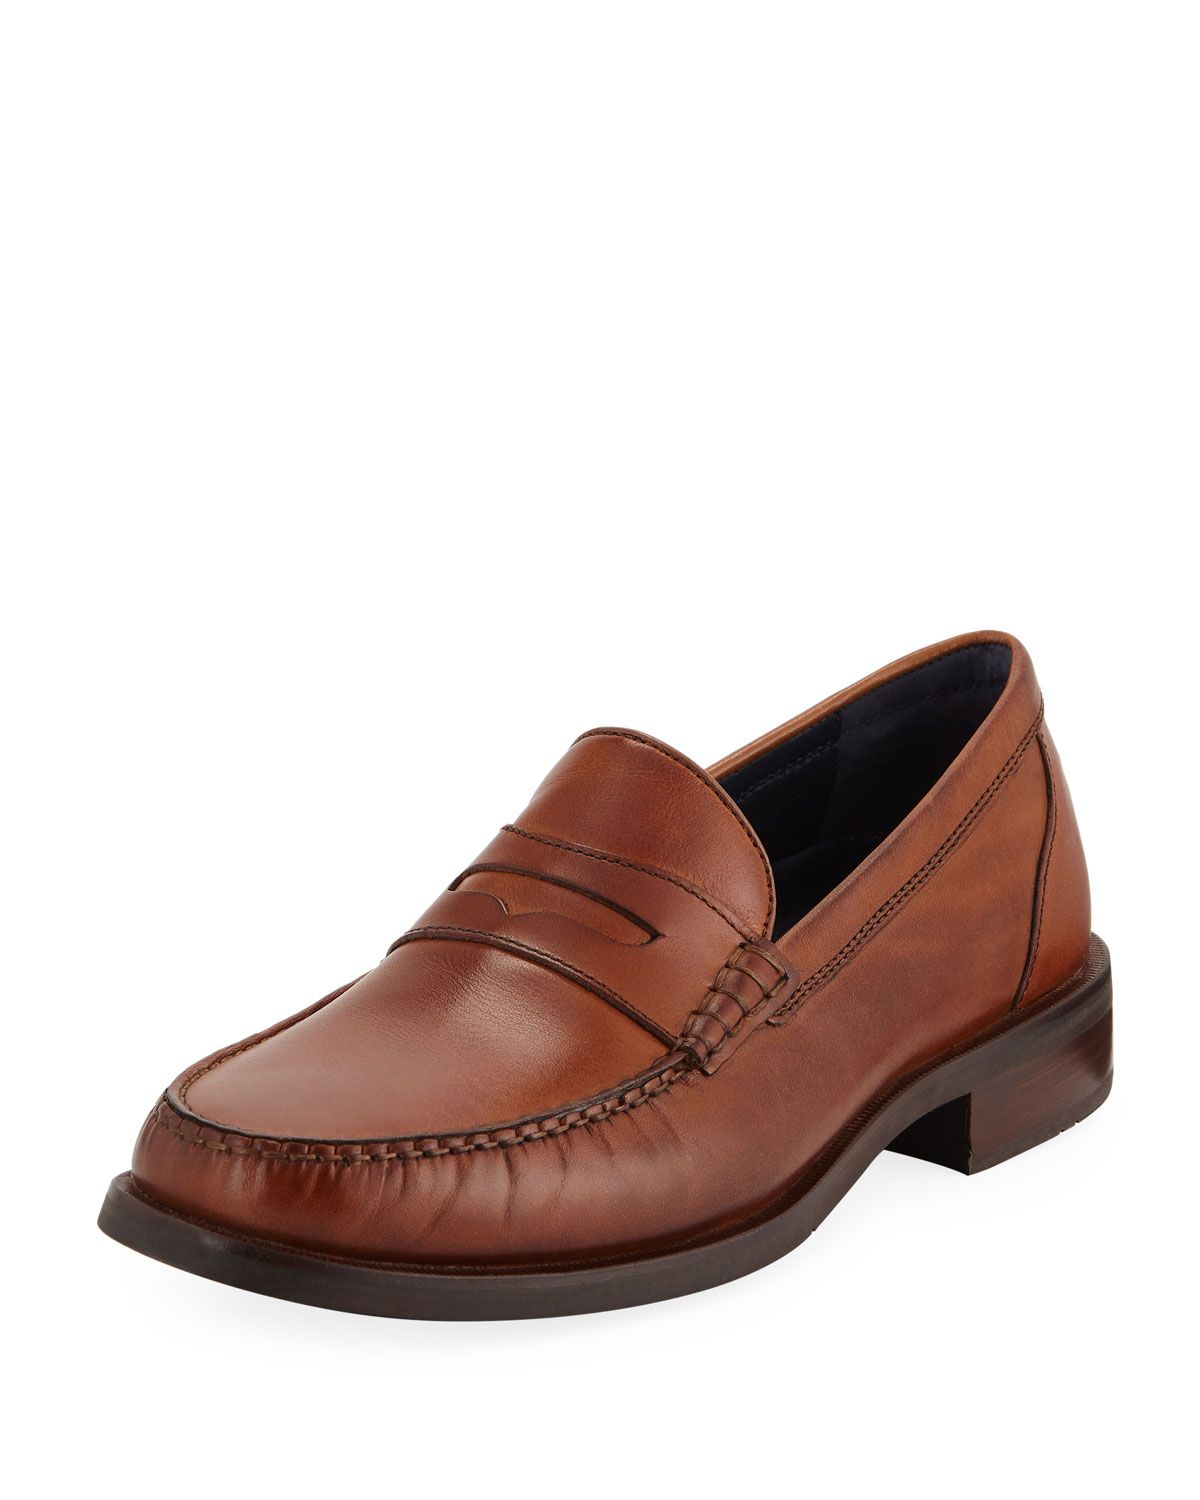 3278f3fda65 COLE HAAN MEN S PINCH SANFORD PENNY LOAFERS.  colehaan  shoes